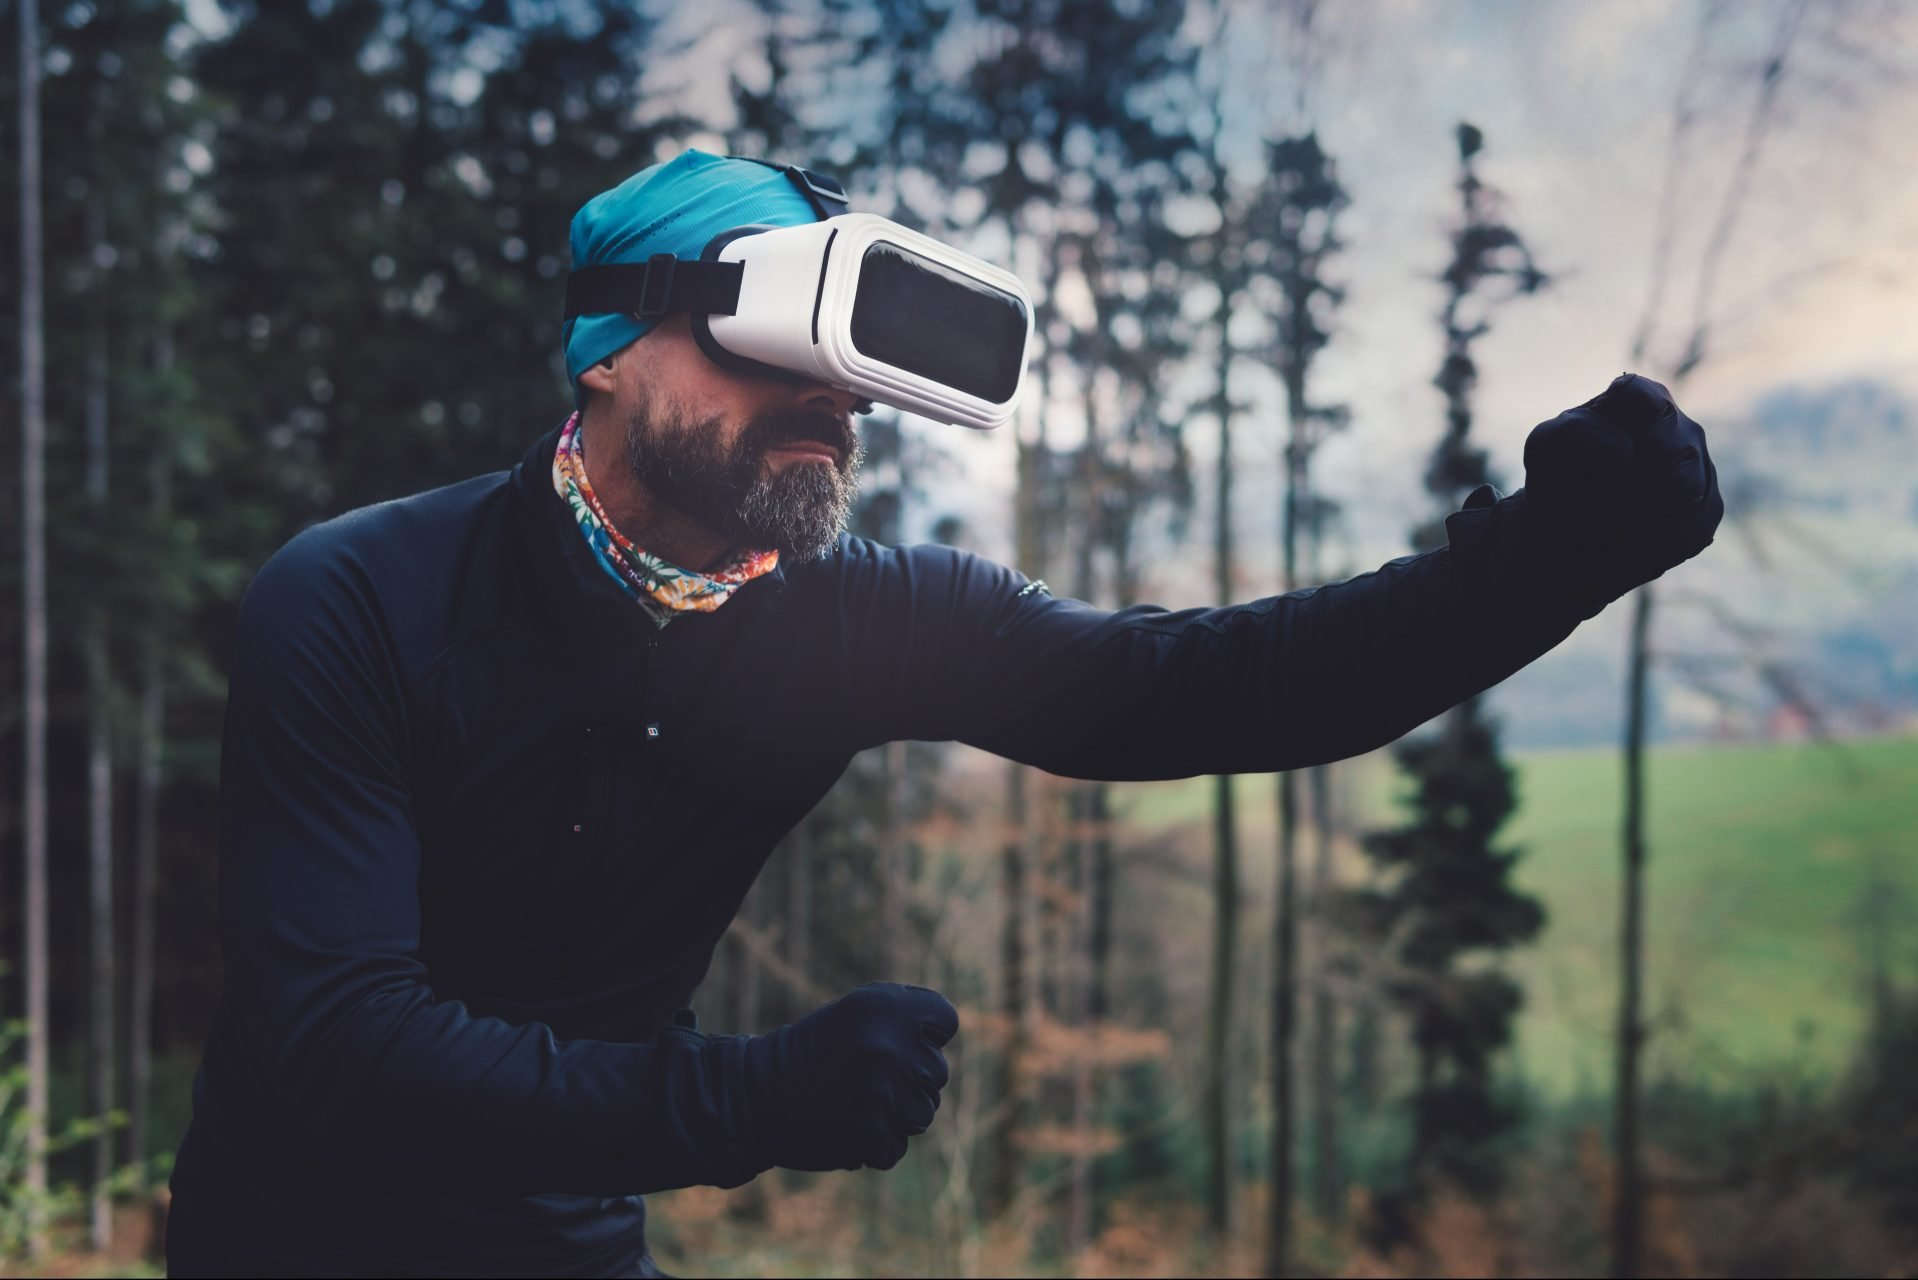 Why are people using Virtual Reality for Exercise Purposes?